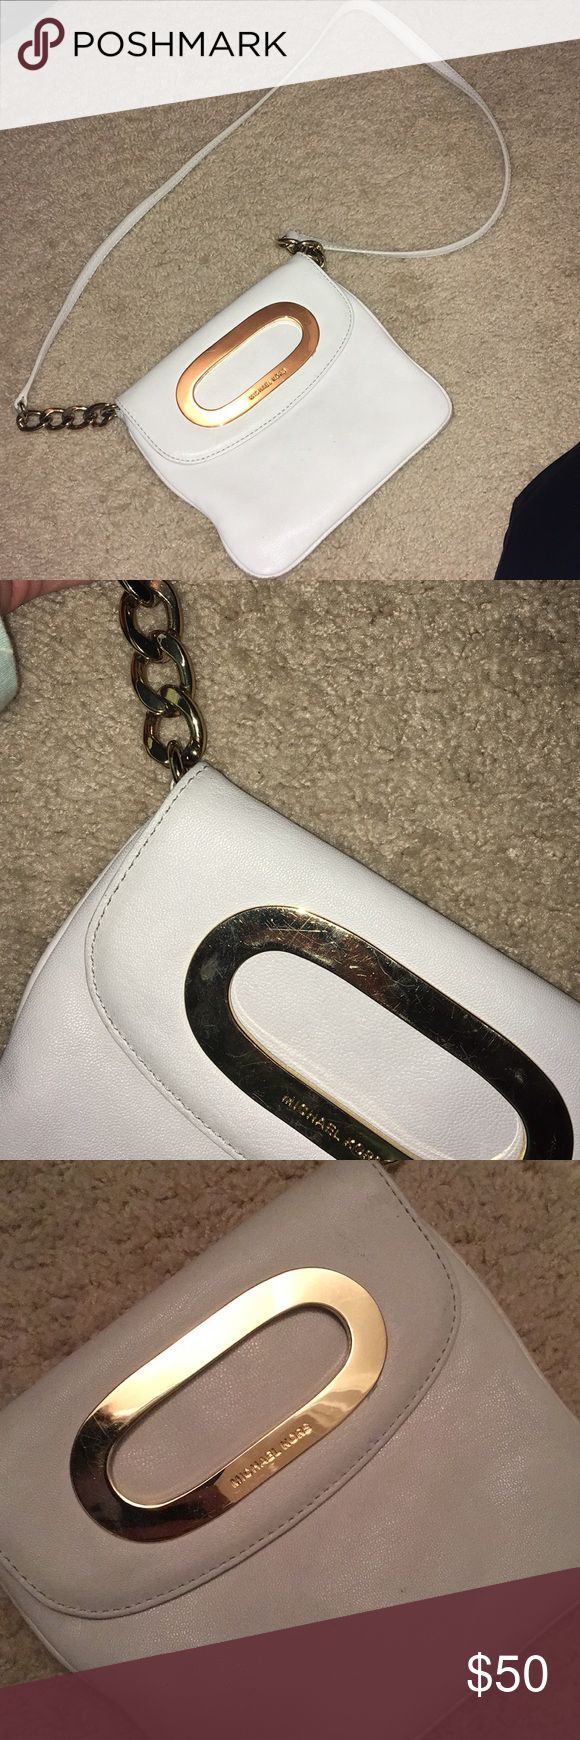 White Cross Body Michael Kors Purse Michael Kors purse. A few scratches on front buckle, inside in perfect condition. Has gold chain accents KORS Michael Kors Bags